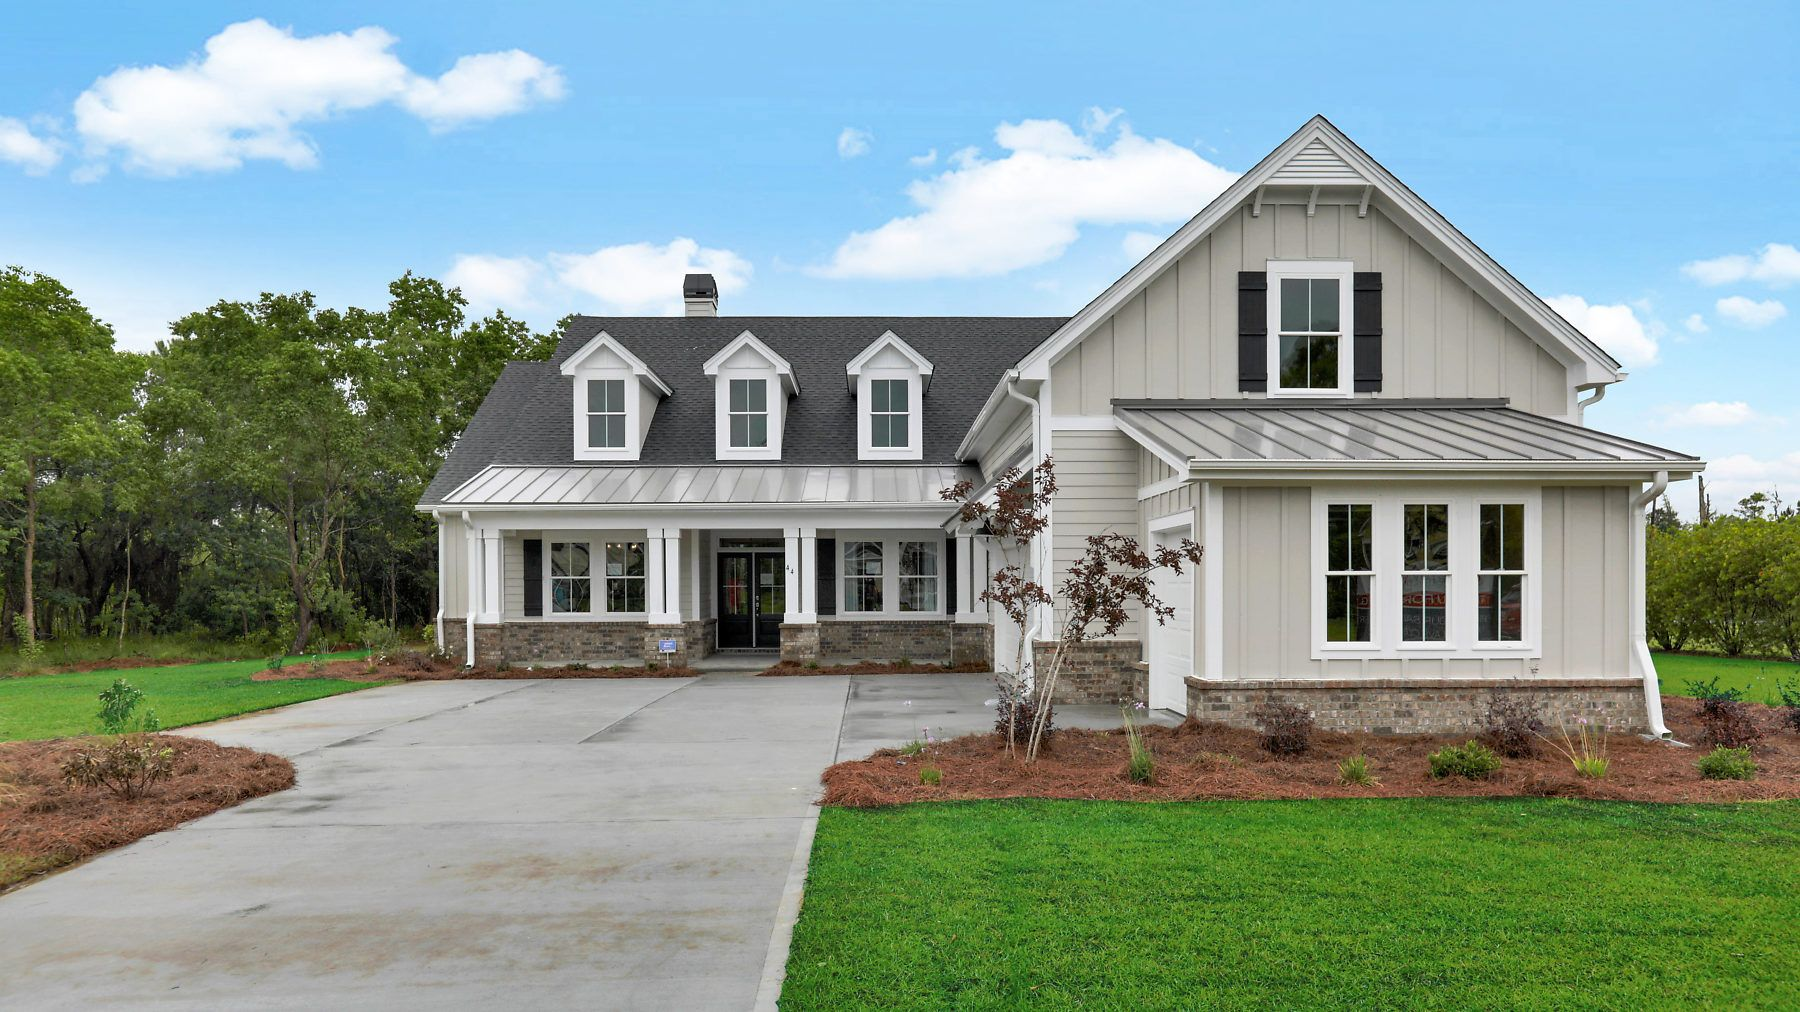 'Westbrook Grove' by Village Park Homes in Savannah